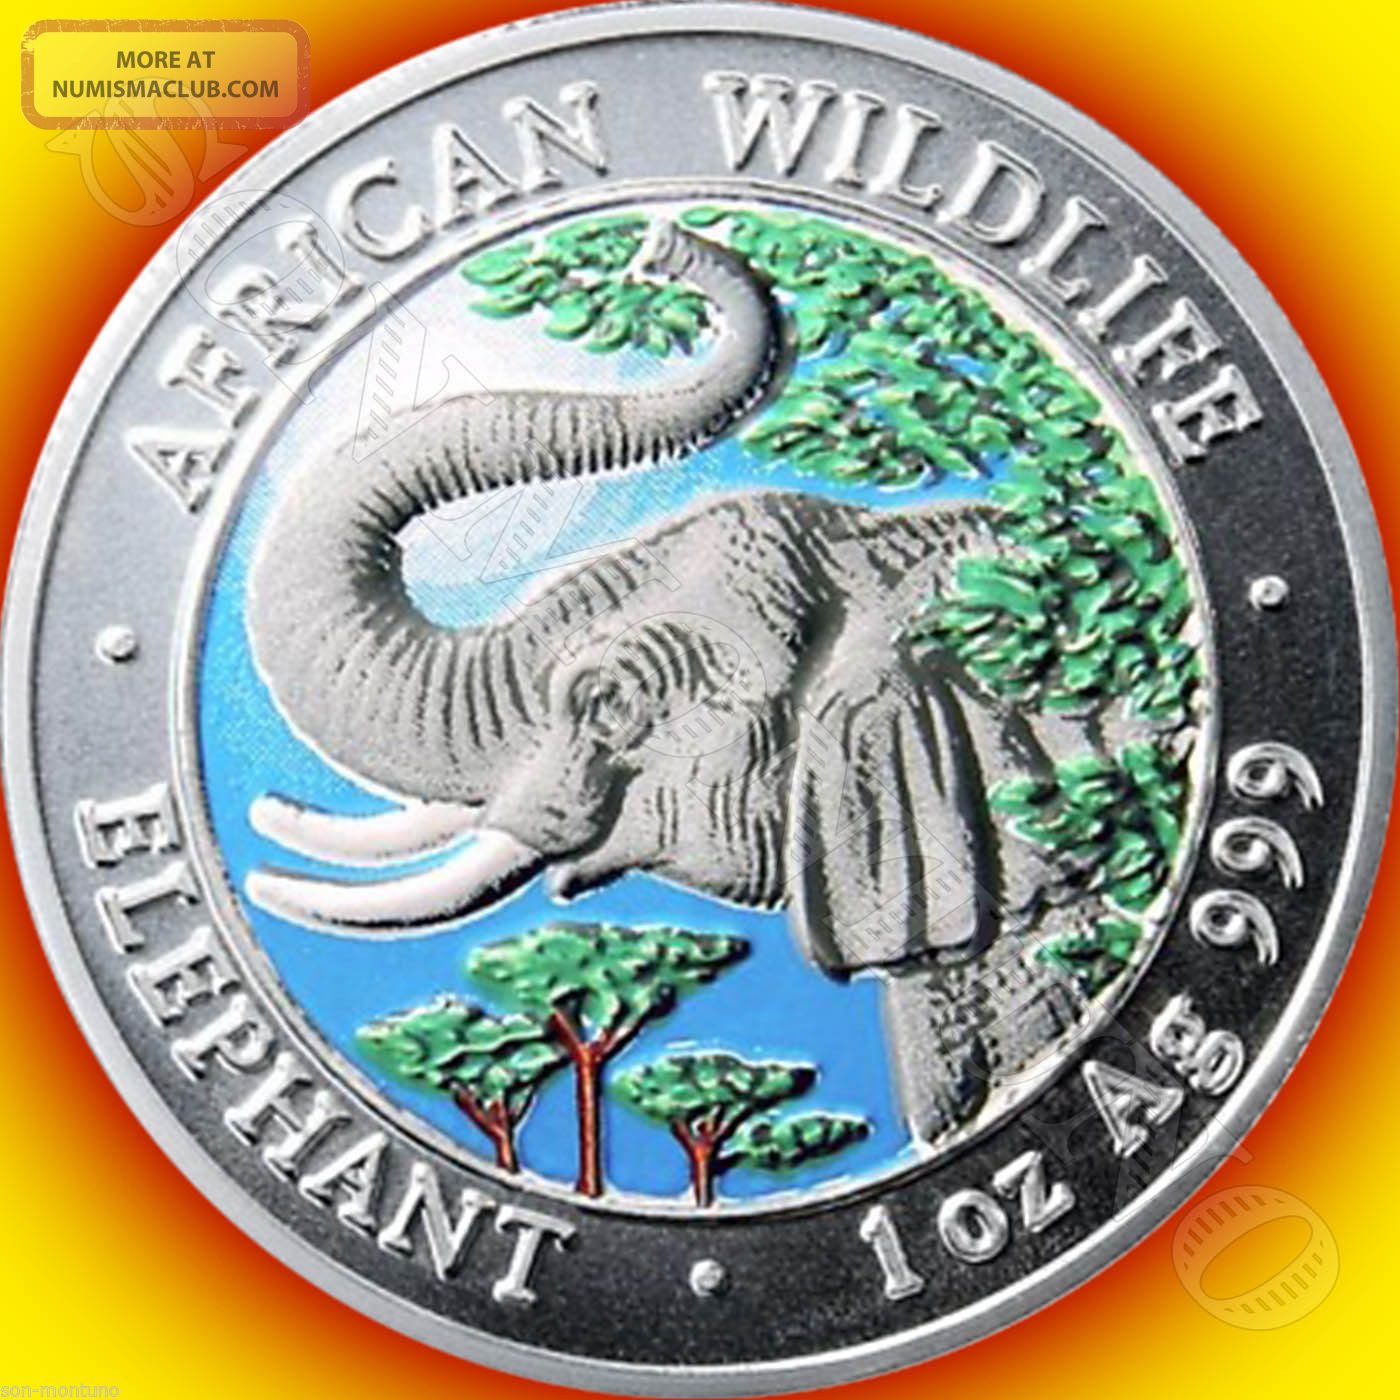 2005 Somalia African Wildlife Colorized Elephant Silver Coin Hard Date To Find Africa photo